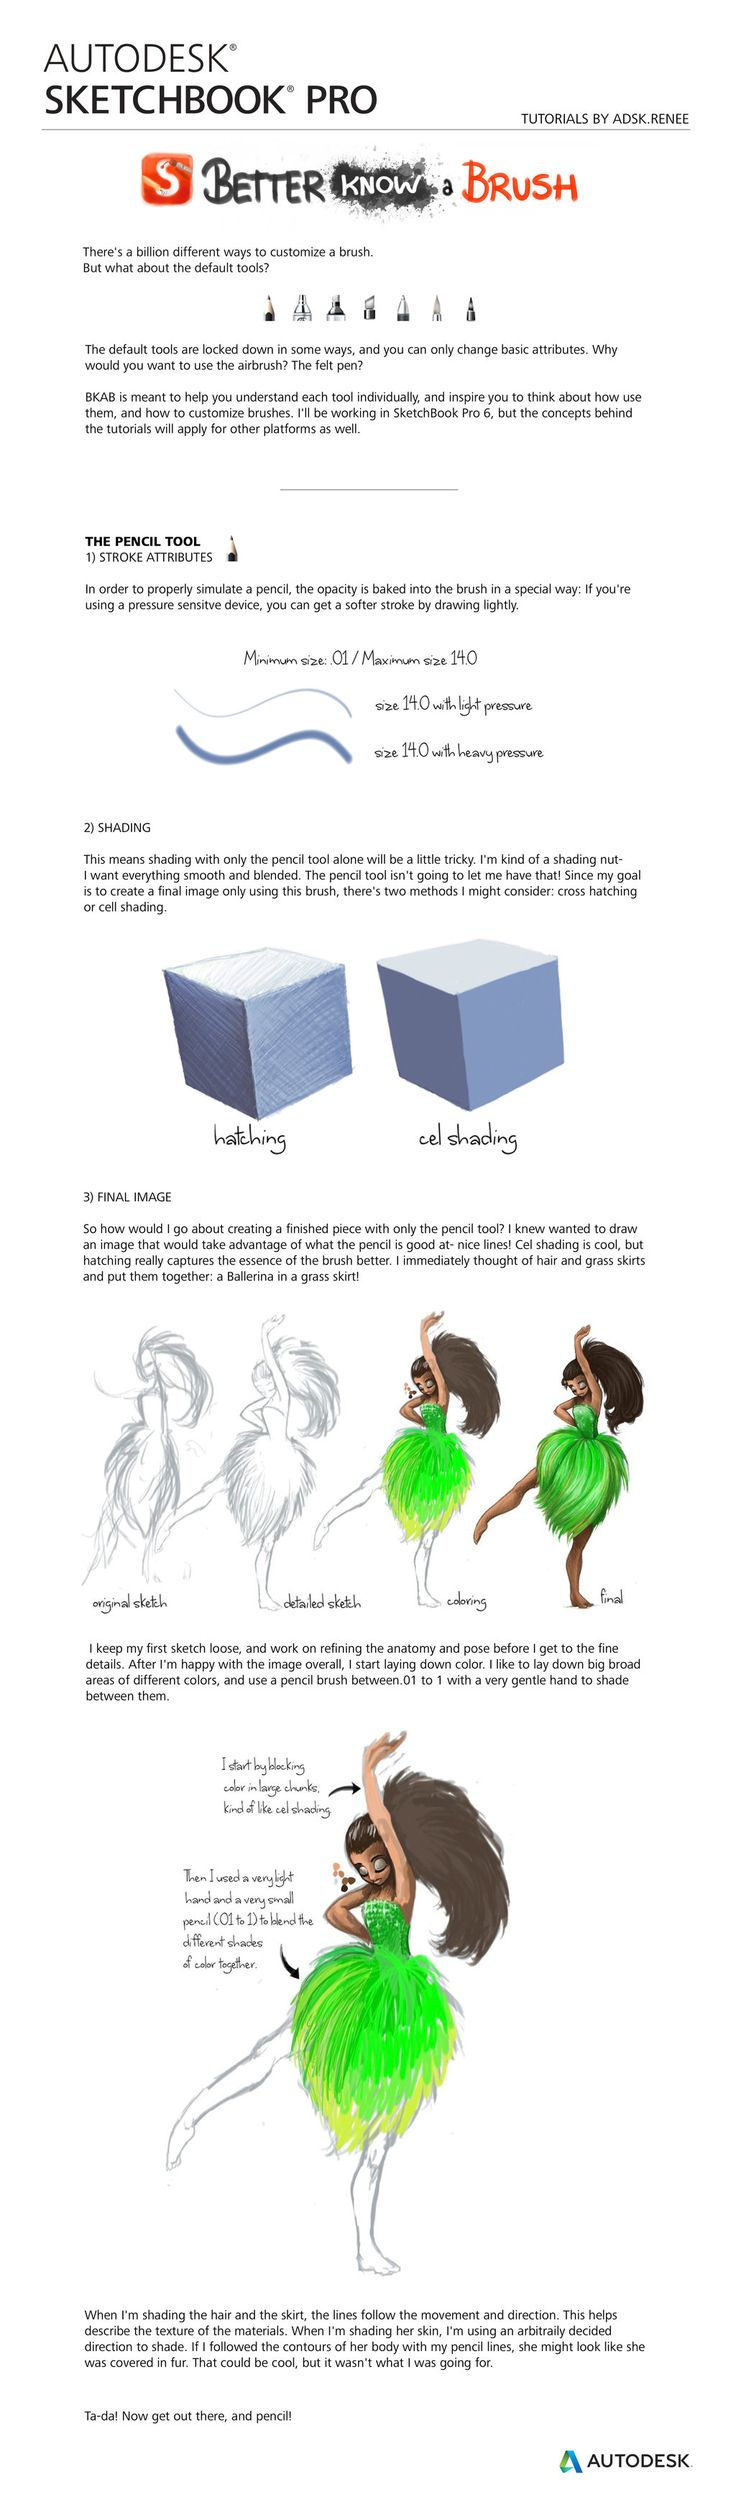 Autodesk SketchBook Pro :BKAB- the Pencil Tutorial by reneedicherri.deviantart.com on @deviantART